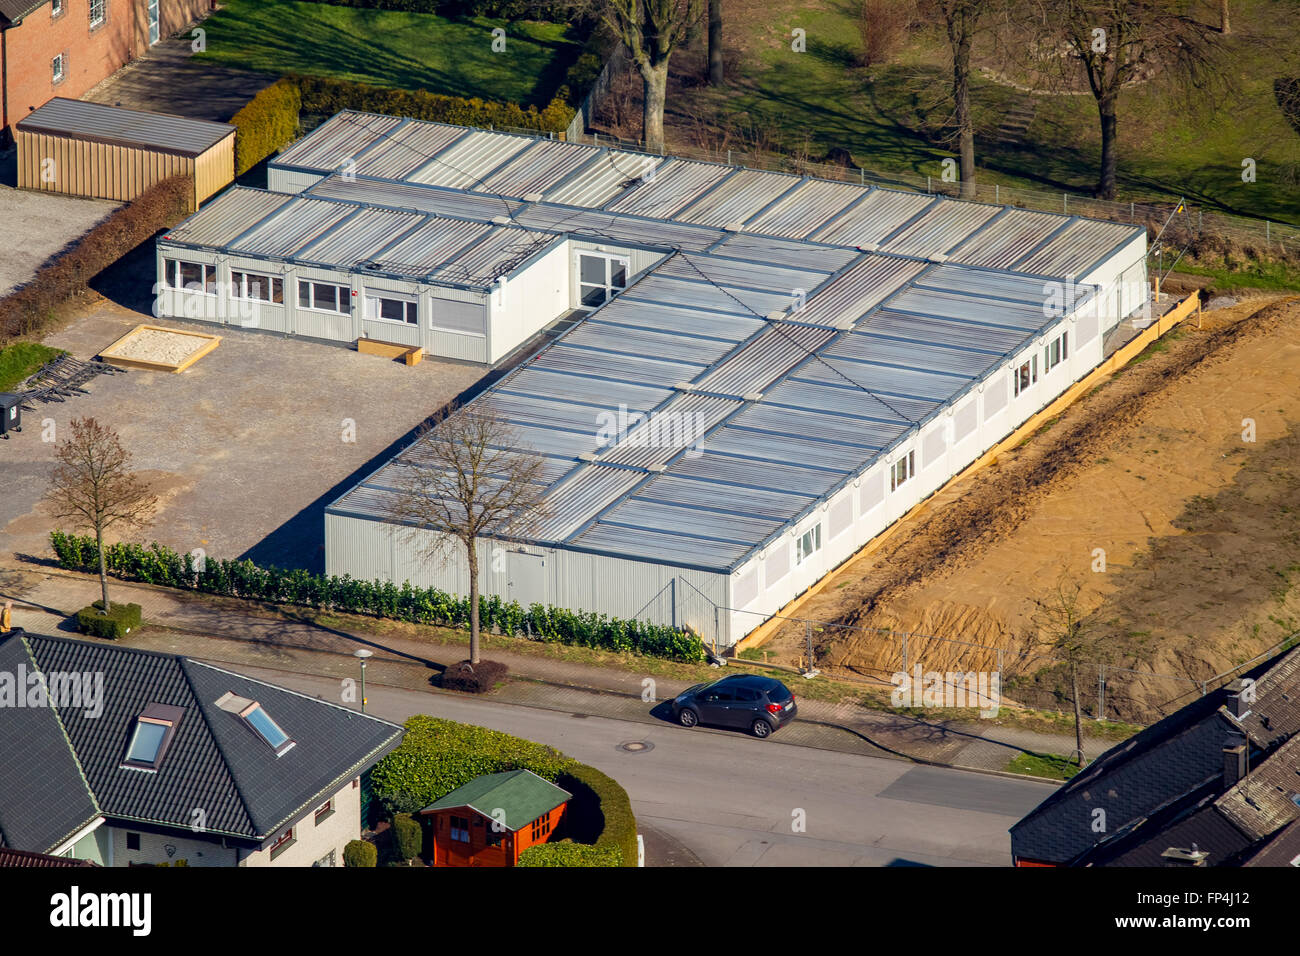 Aerial view, refugee accommodation Liboriweg Feldhausen, Feldhausen, Kirchhellen, Bottrop, Ruhr, Nordrhein-Westfalen, - Stock Image